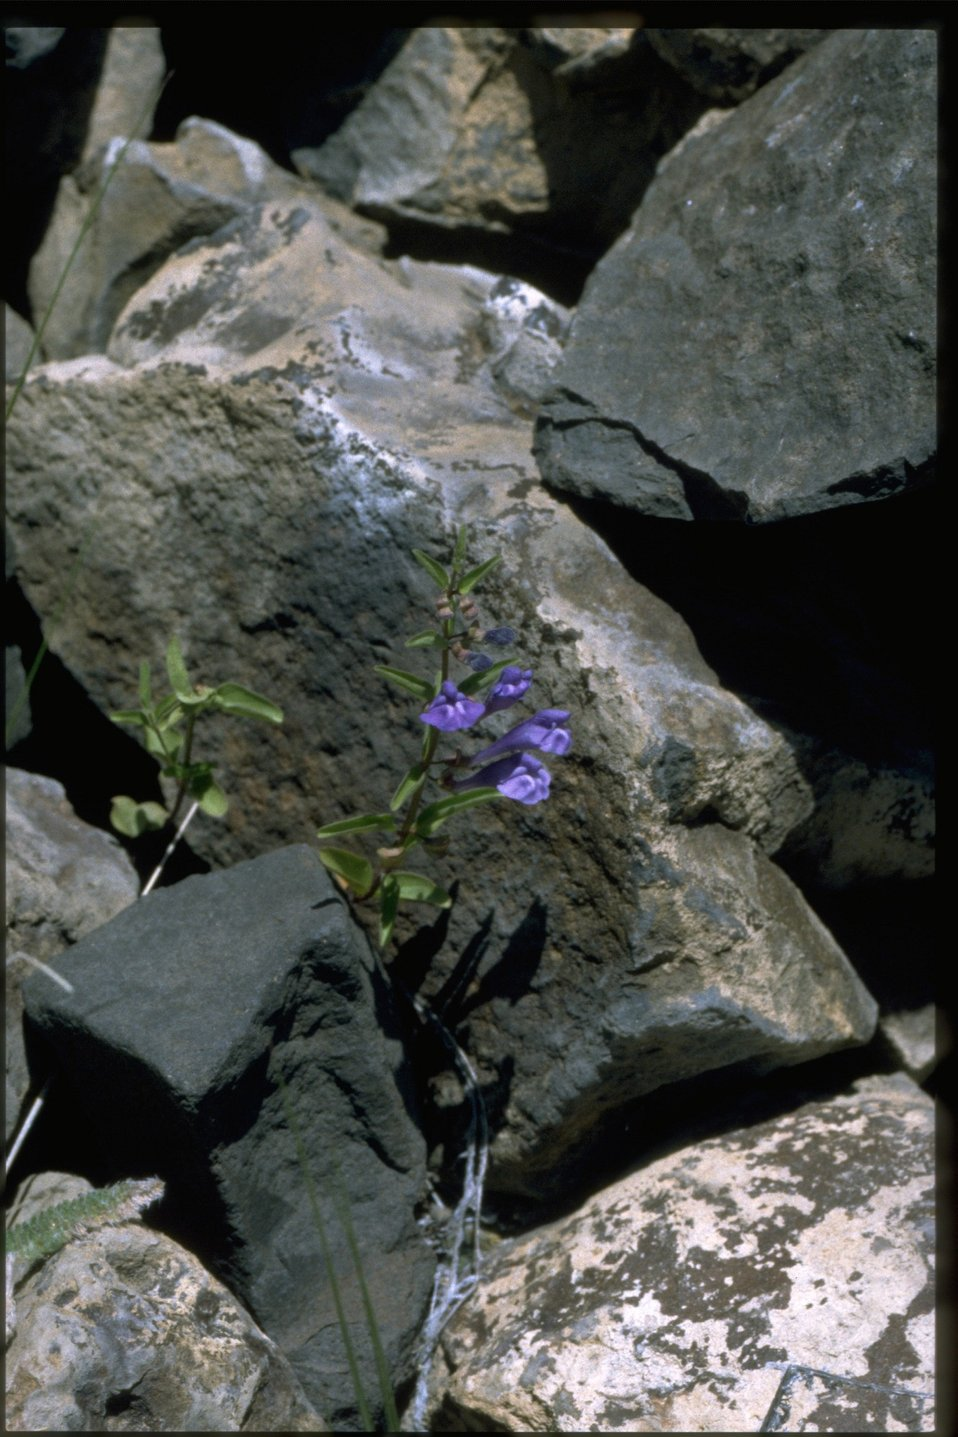 Narrowleaf skullcap (Scutellaria angustifolia) growing in basalt outcrop.